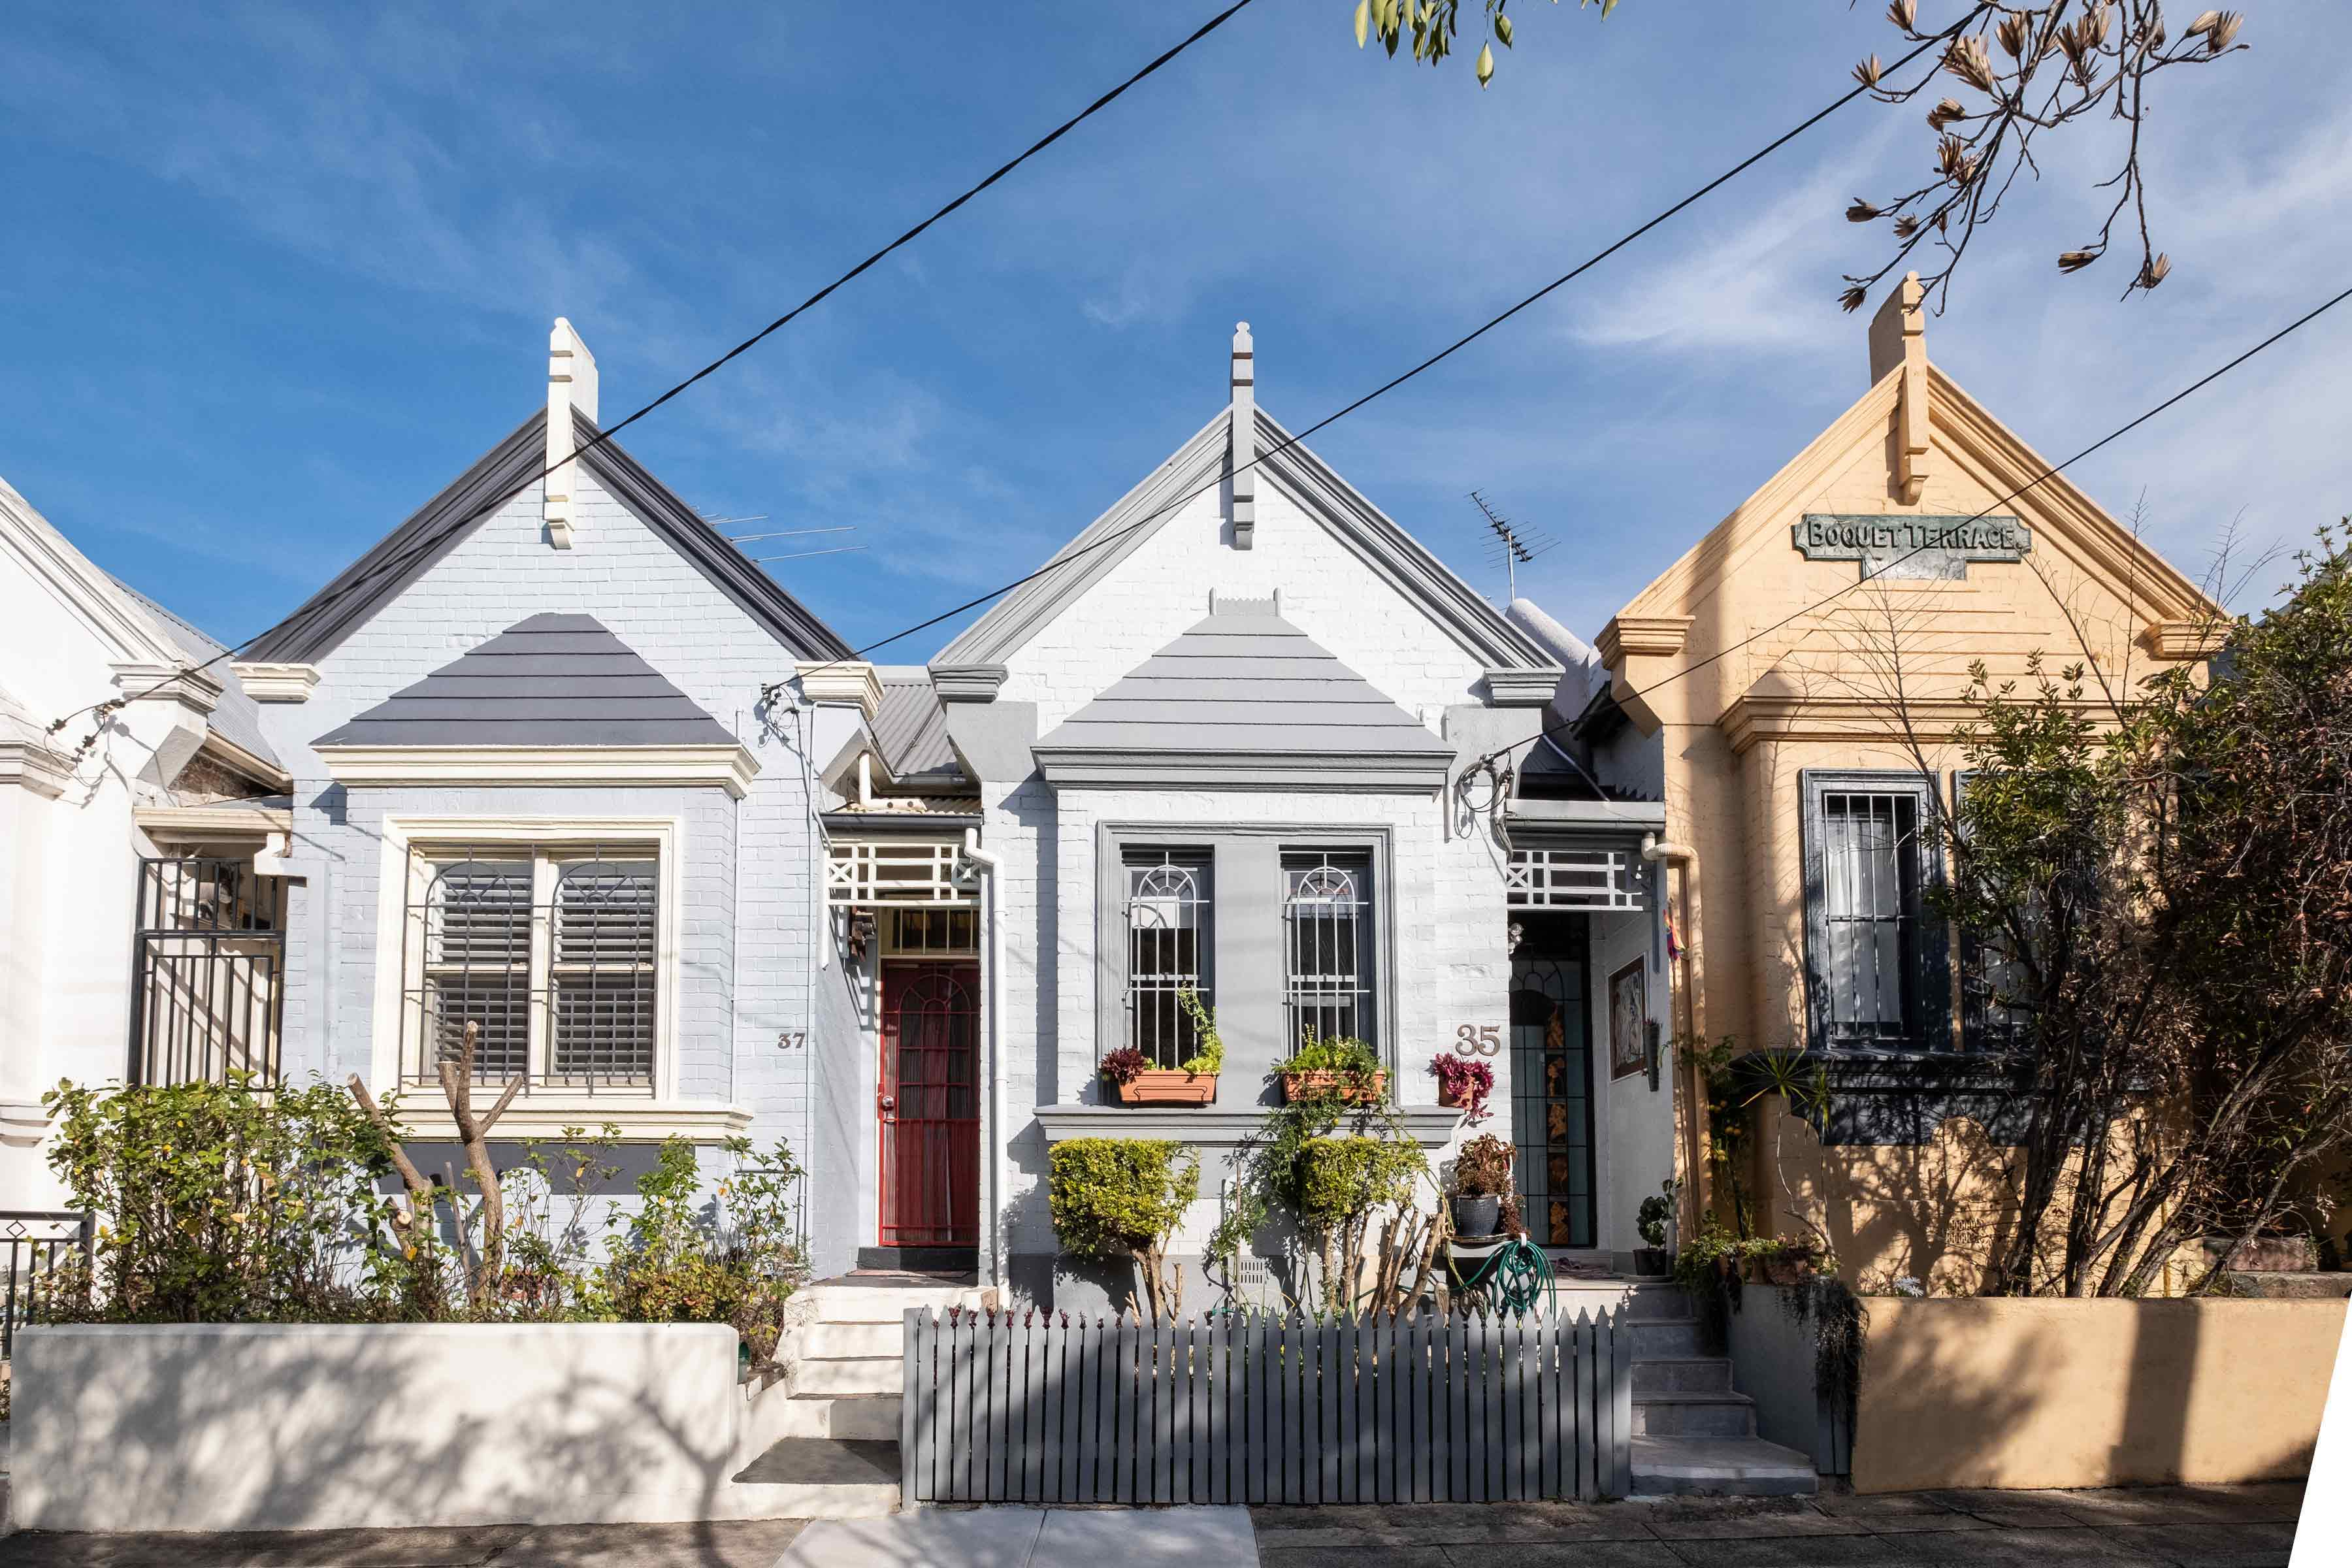 Marrickville Property Manager